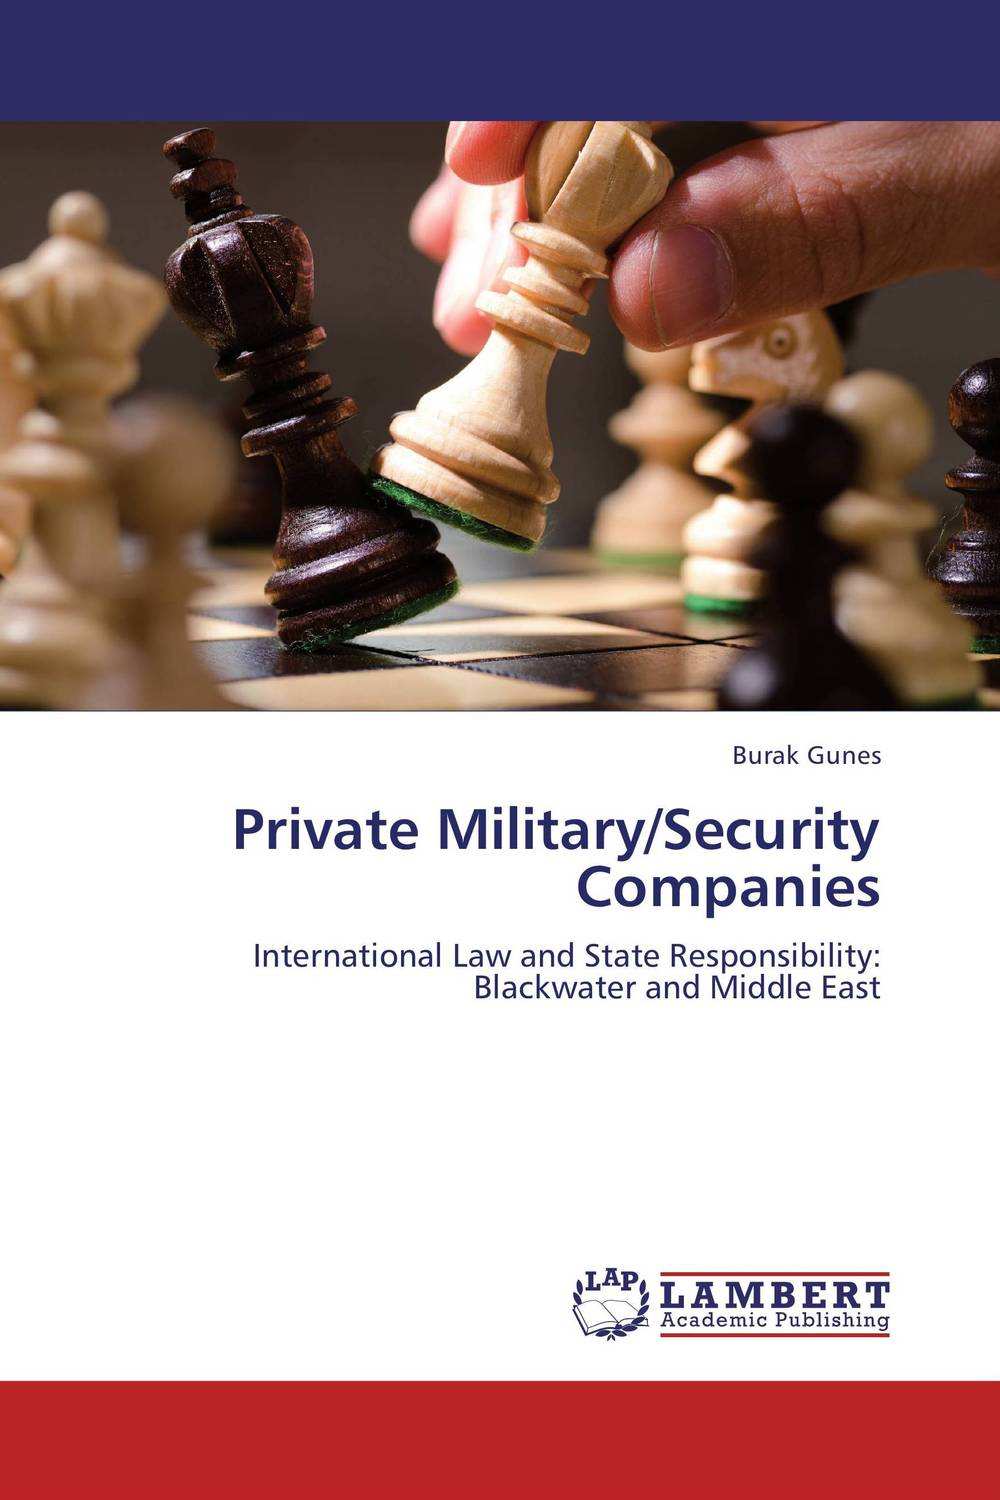 Private Military/Security Companies